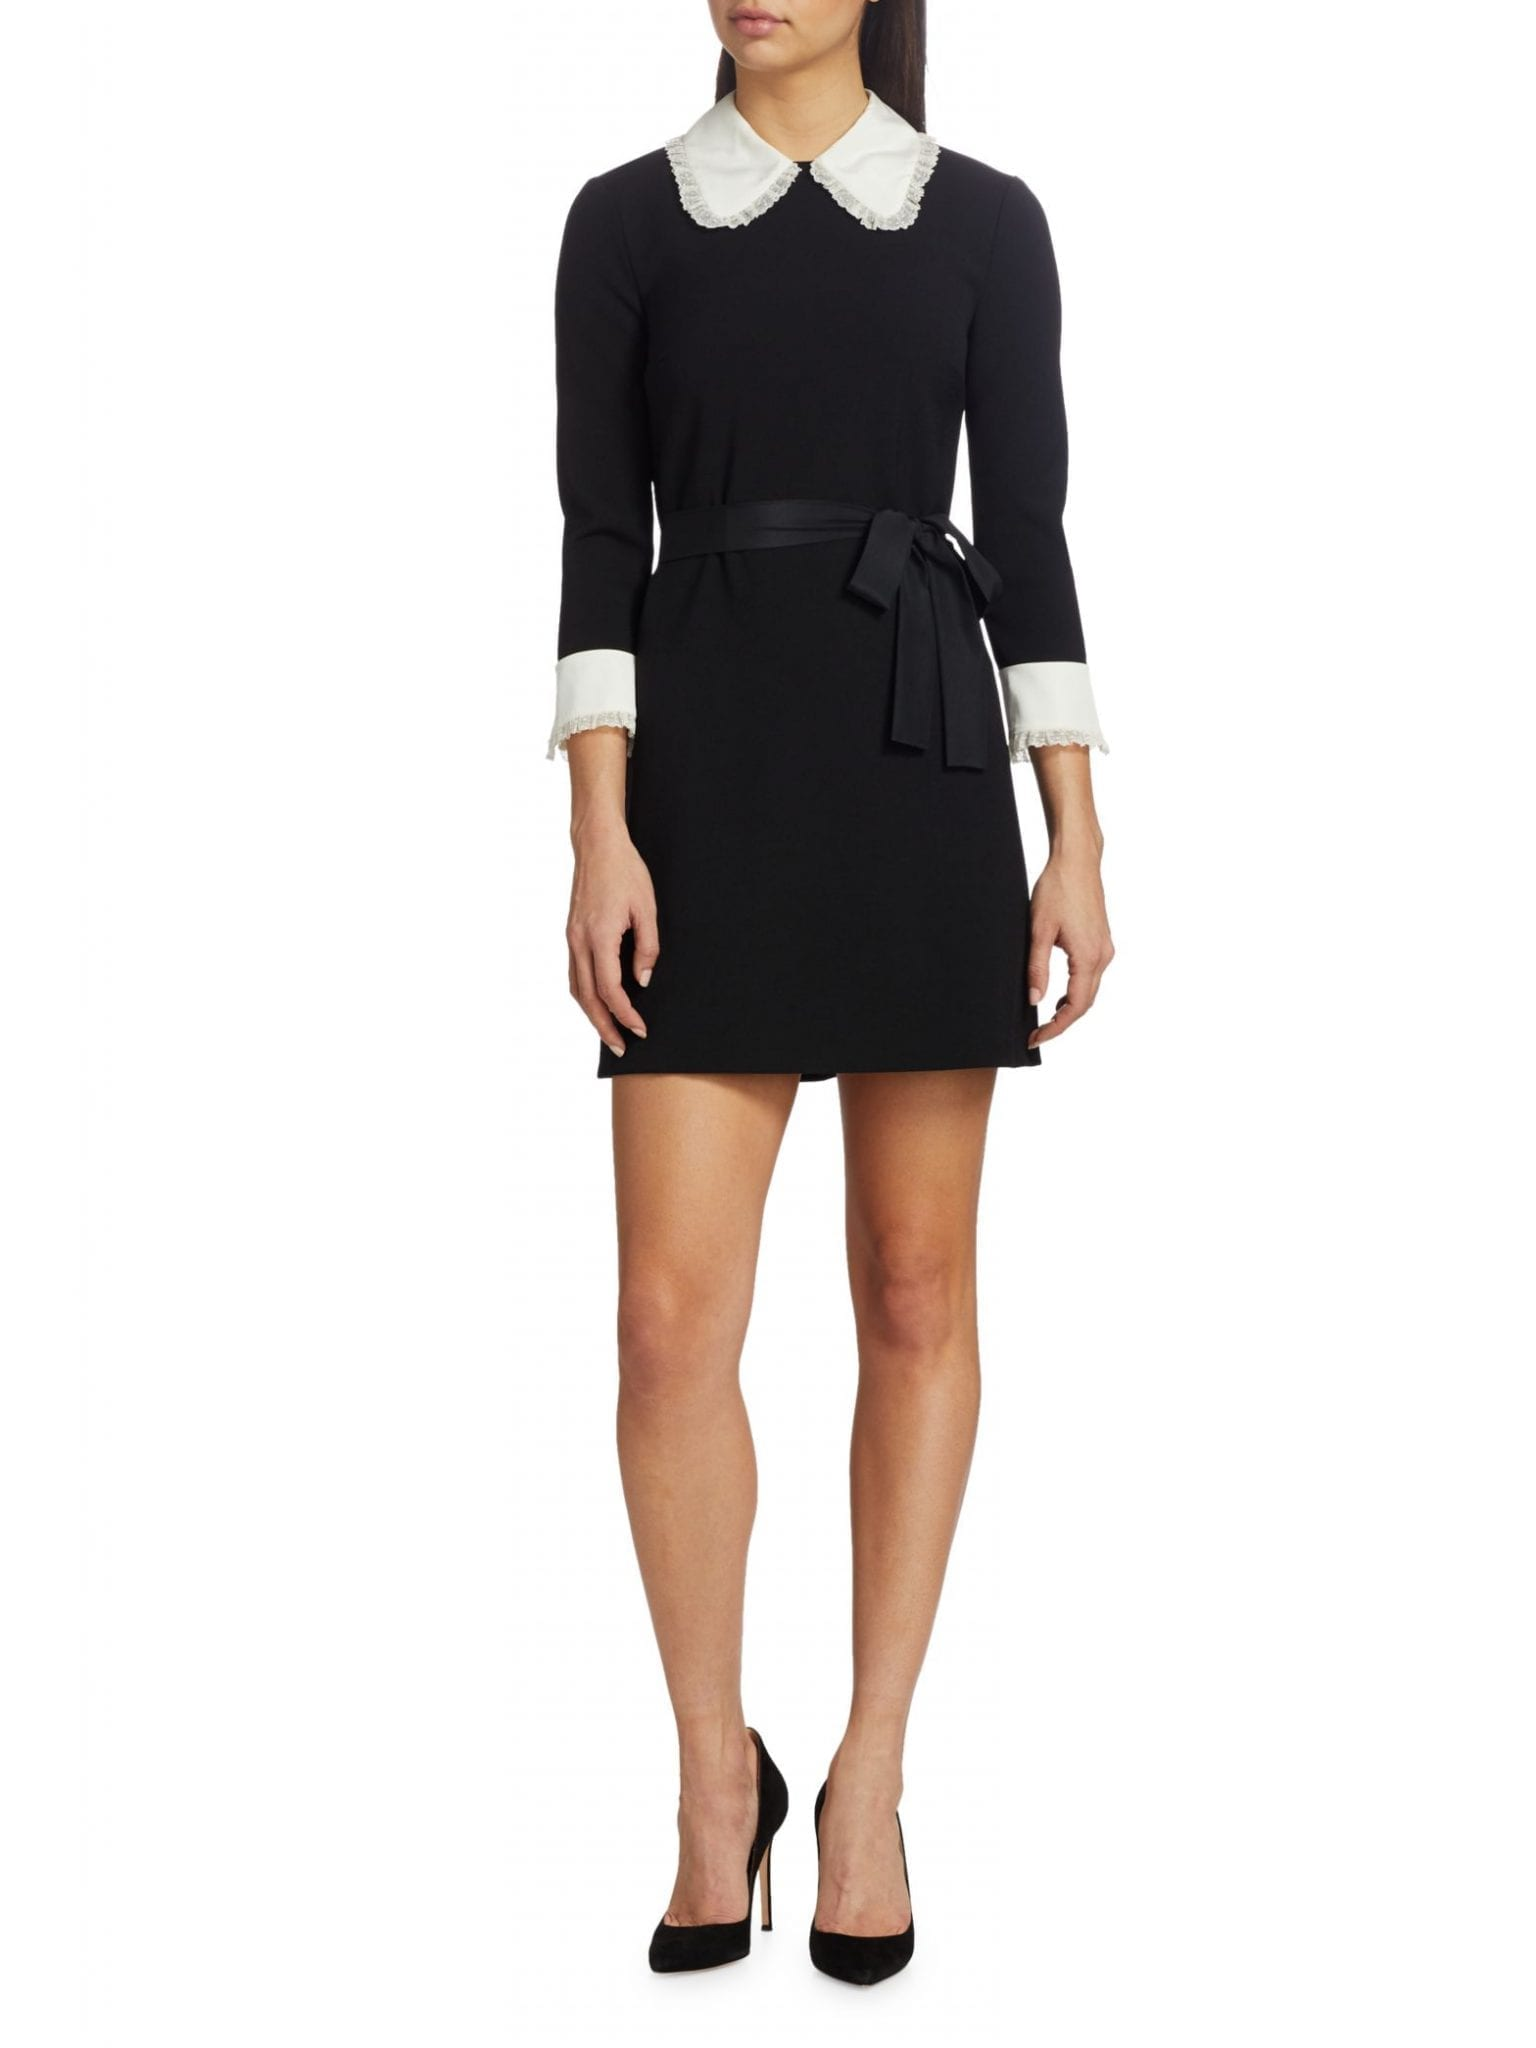 REDVALENTINO Crepe De Chine Collar Dress